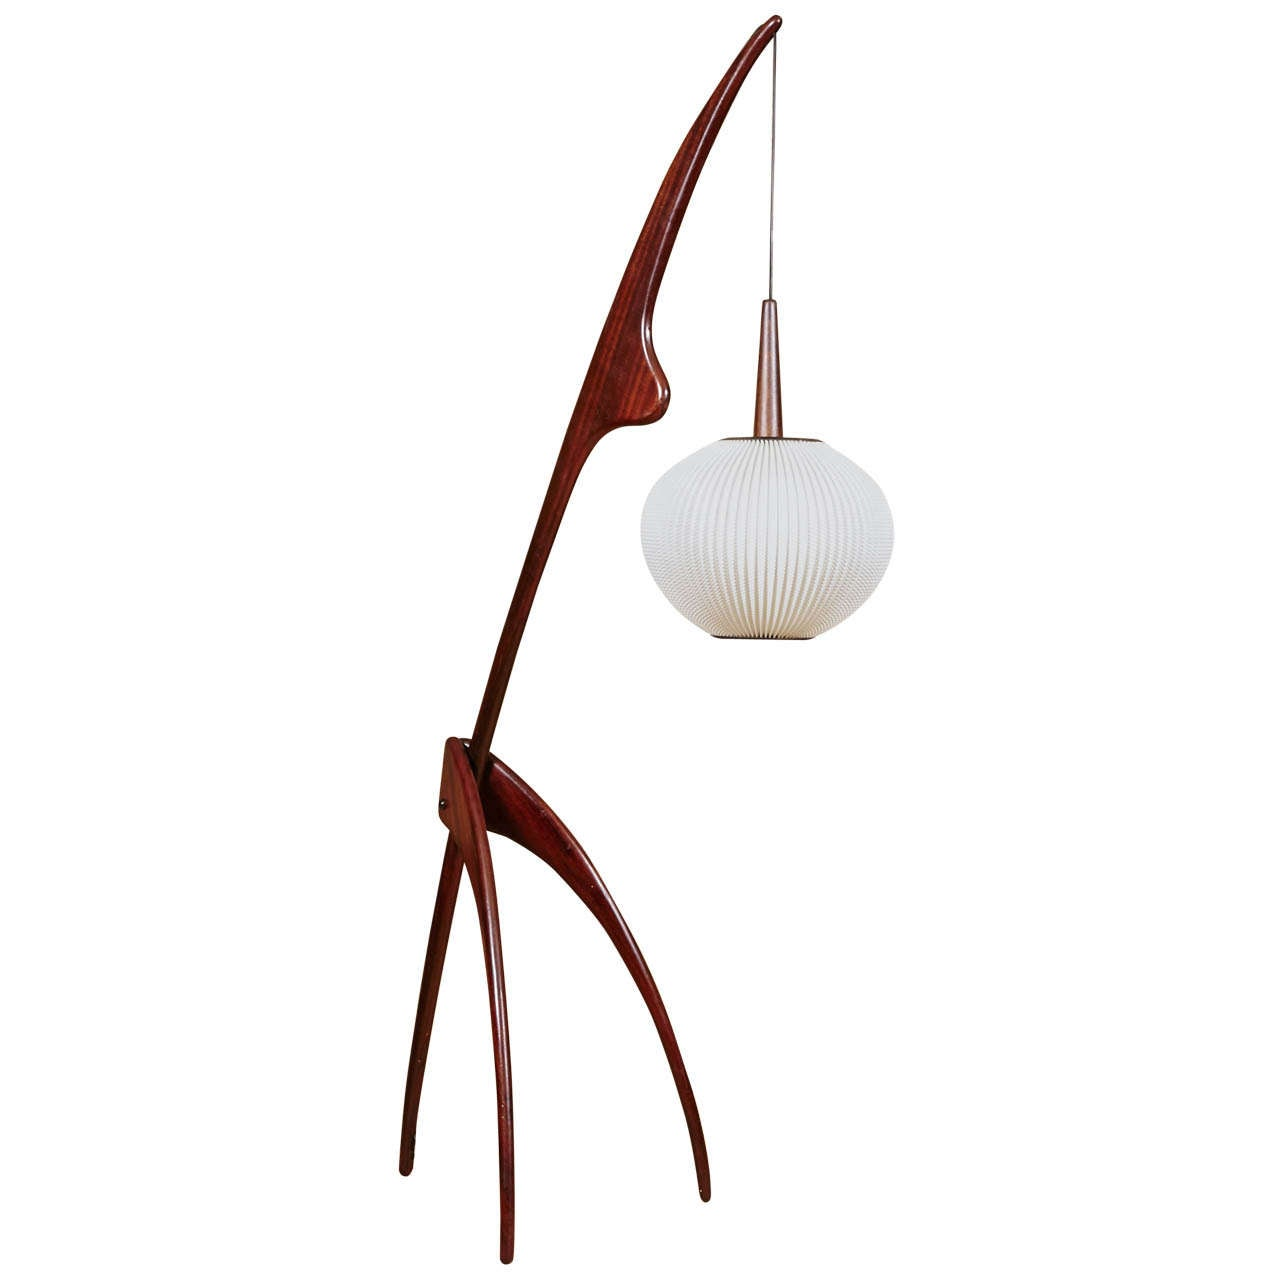 praying mantis floor lamp by rispal circa 1950 at 1stdibs. Black Bedroom Furniture Sets. Home Design Ideas